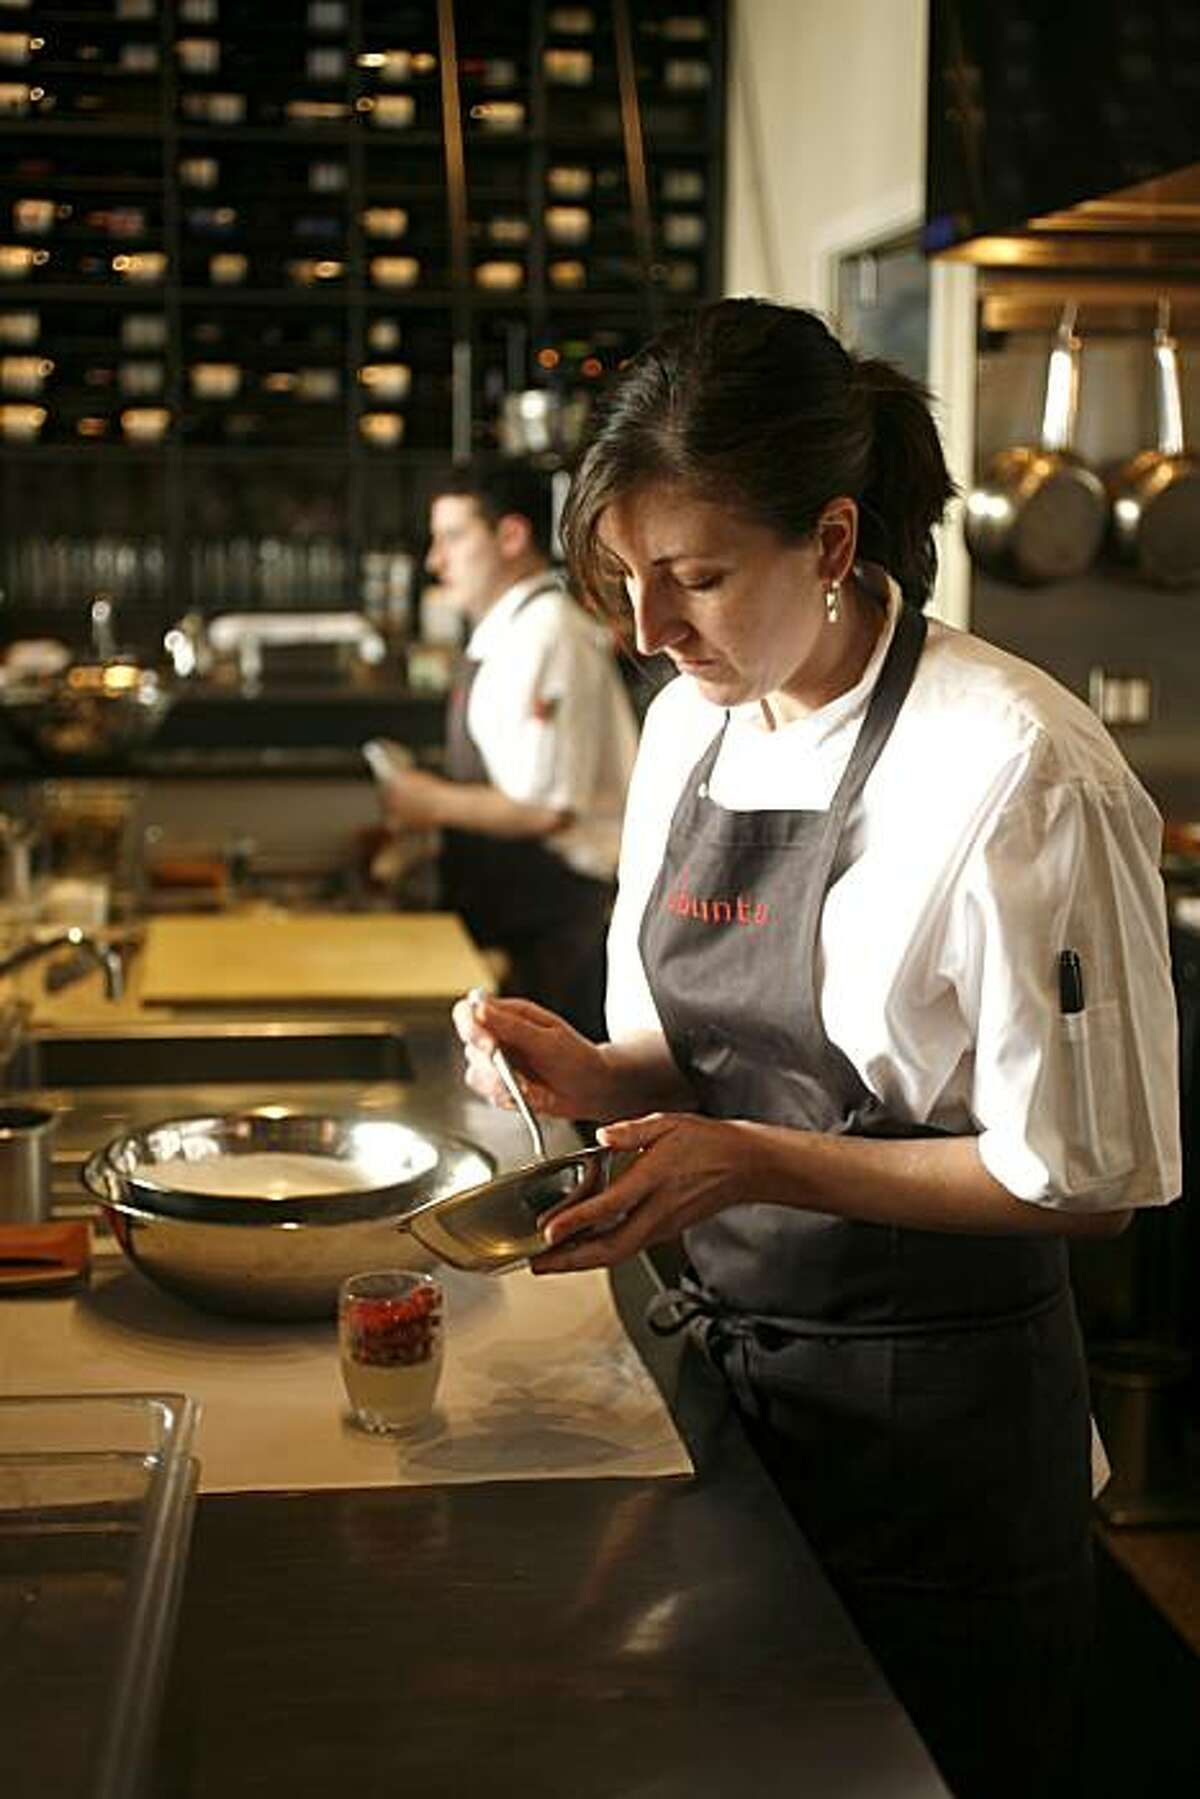 Deanie Hickox has been named pastry chef at Daniel Patterson's new Oakland restaurant, Plum. Craig Lee / The Chronicle